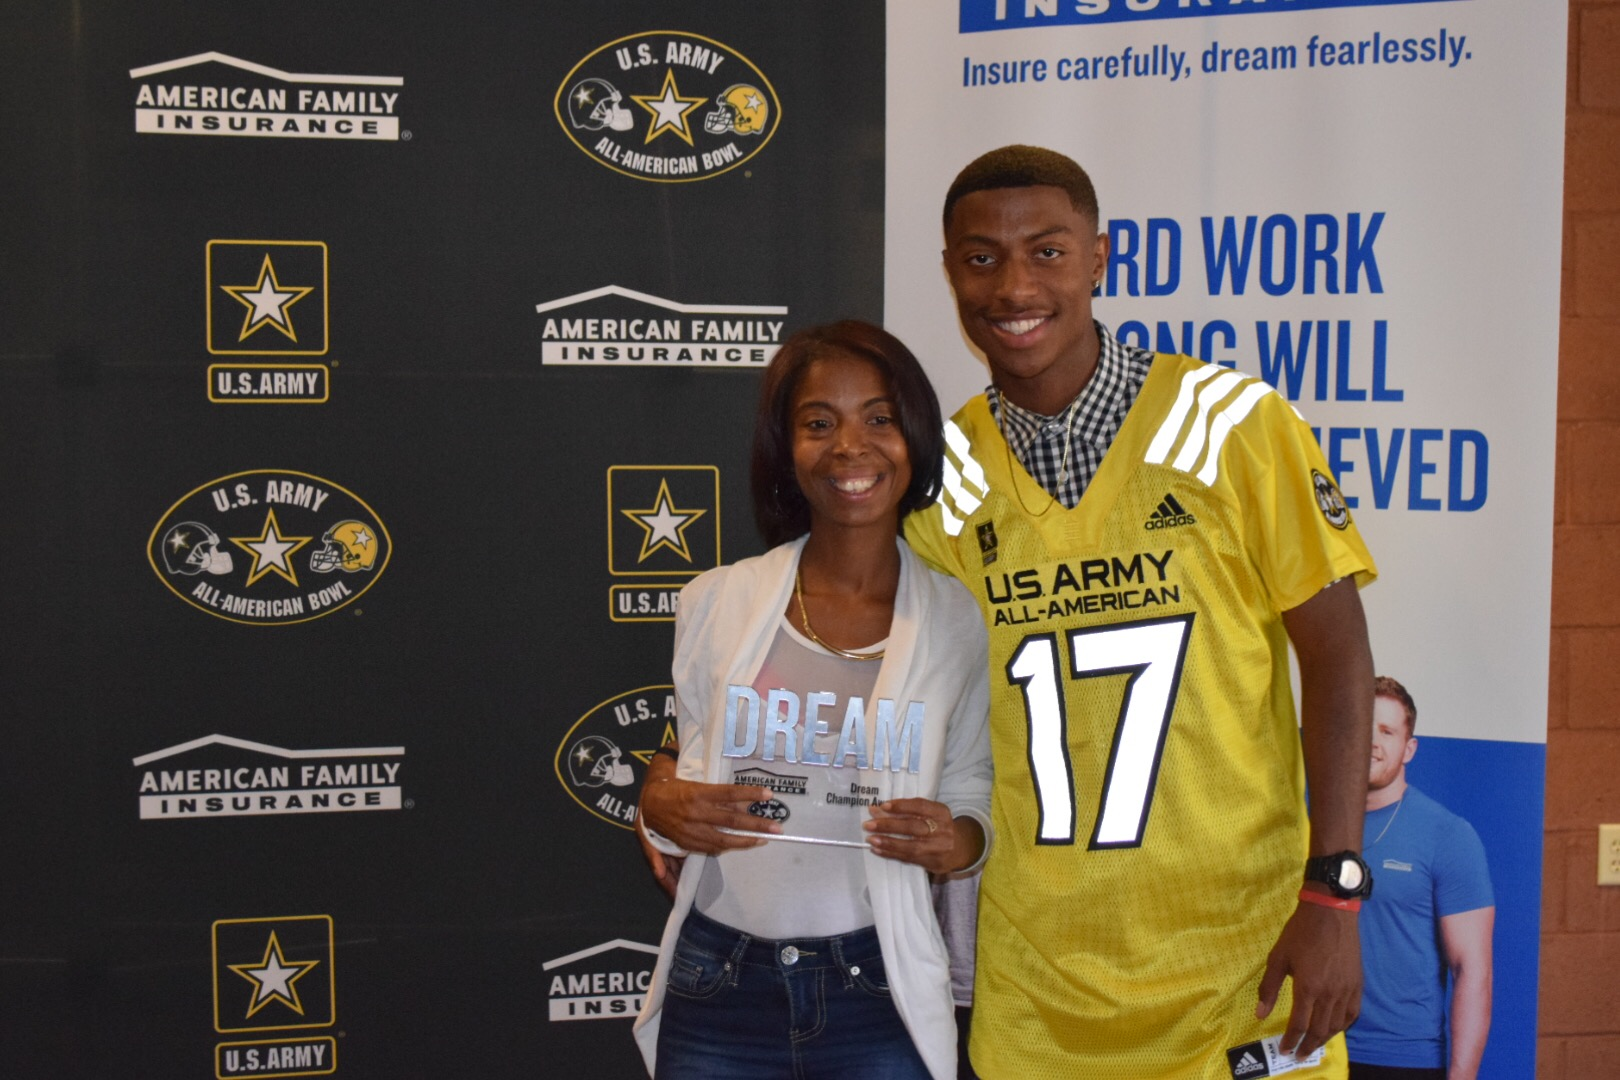 Jamire Calvin's American Family Insurance Dream Champion award was presented to his mother, Jamire Calvin's mother, Yana Johnson (Photo: Army All-American Bowl)